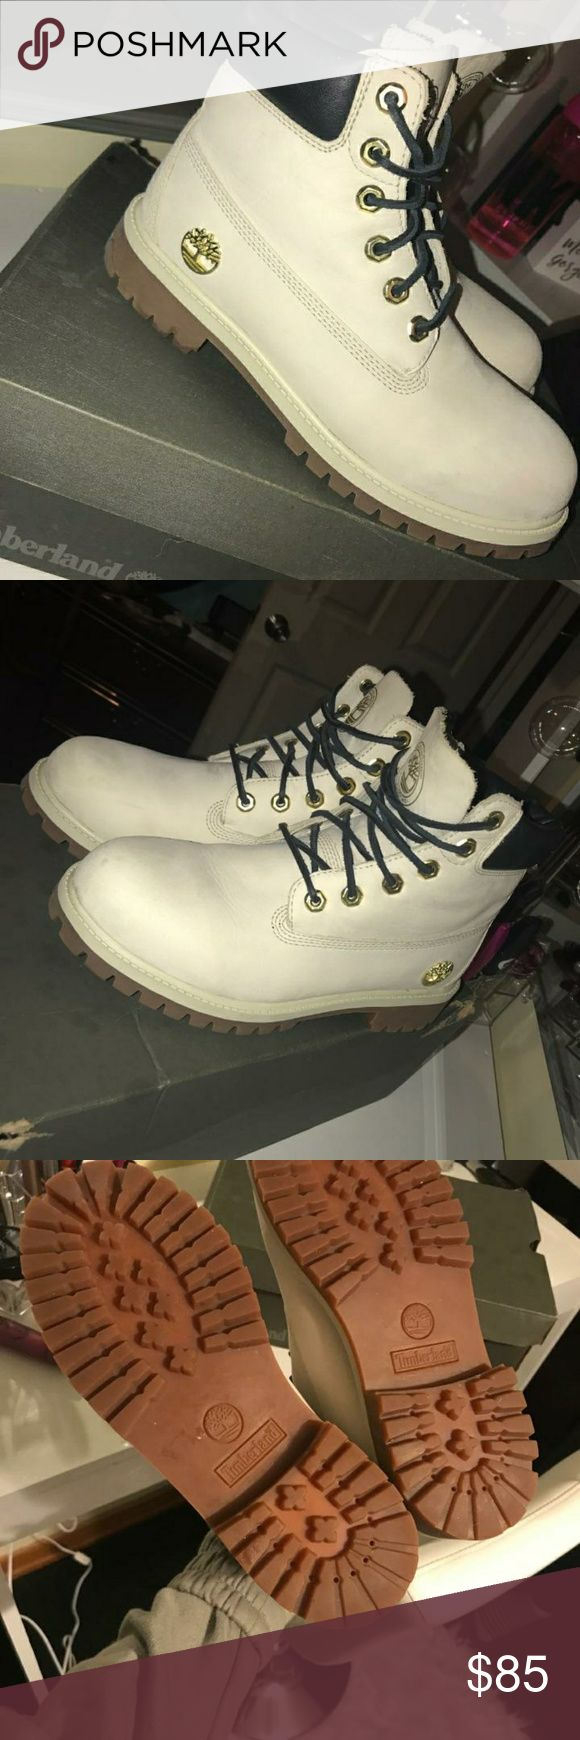 Size 6Y Timberland boots Size 6 in boys but fit size 8 in women's. Worn only once and in great condition. Price is pretty firm but can be negotiated down a little! Timberland Shoes Winter & Rain Boots